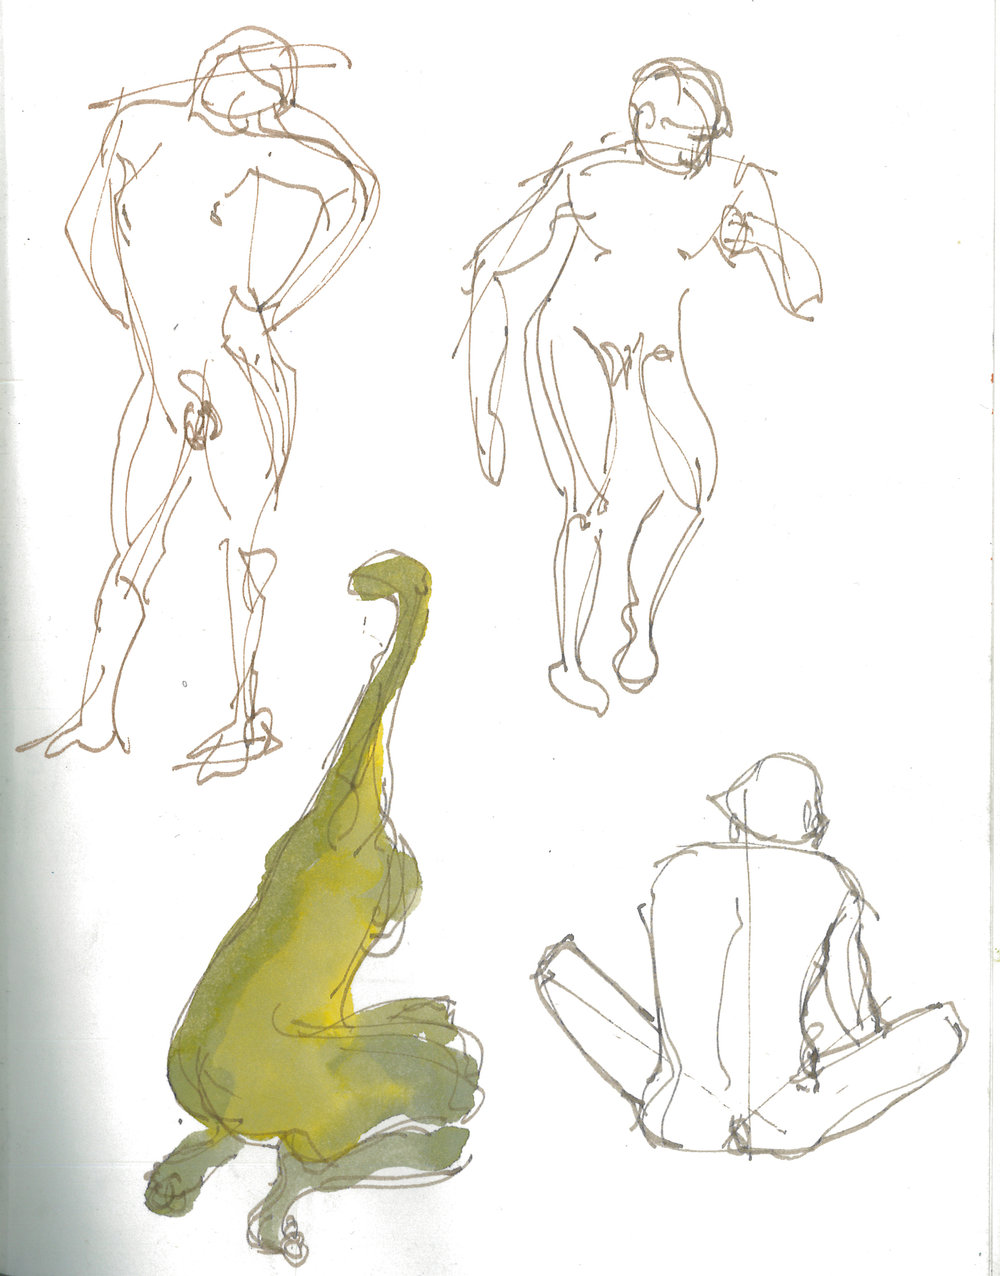 FIGURE_2SketchbookA_ScanC_Page_02.jpg